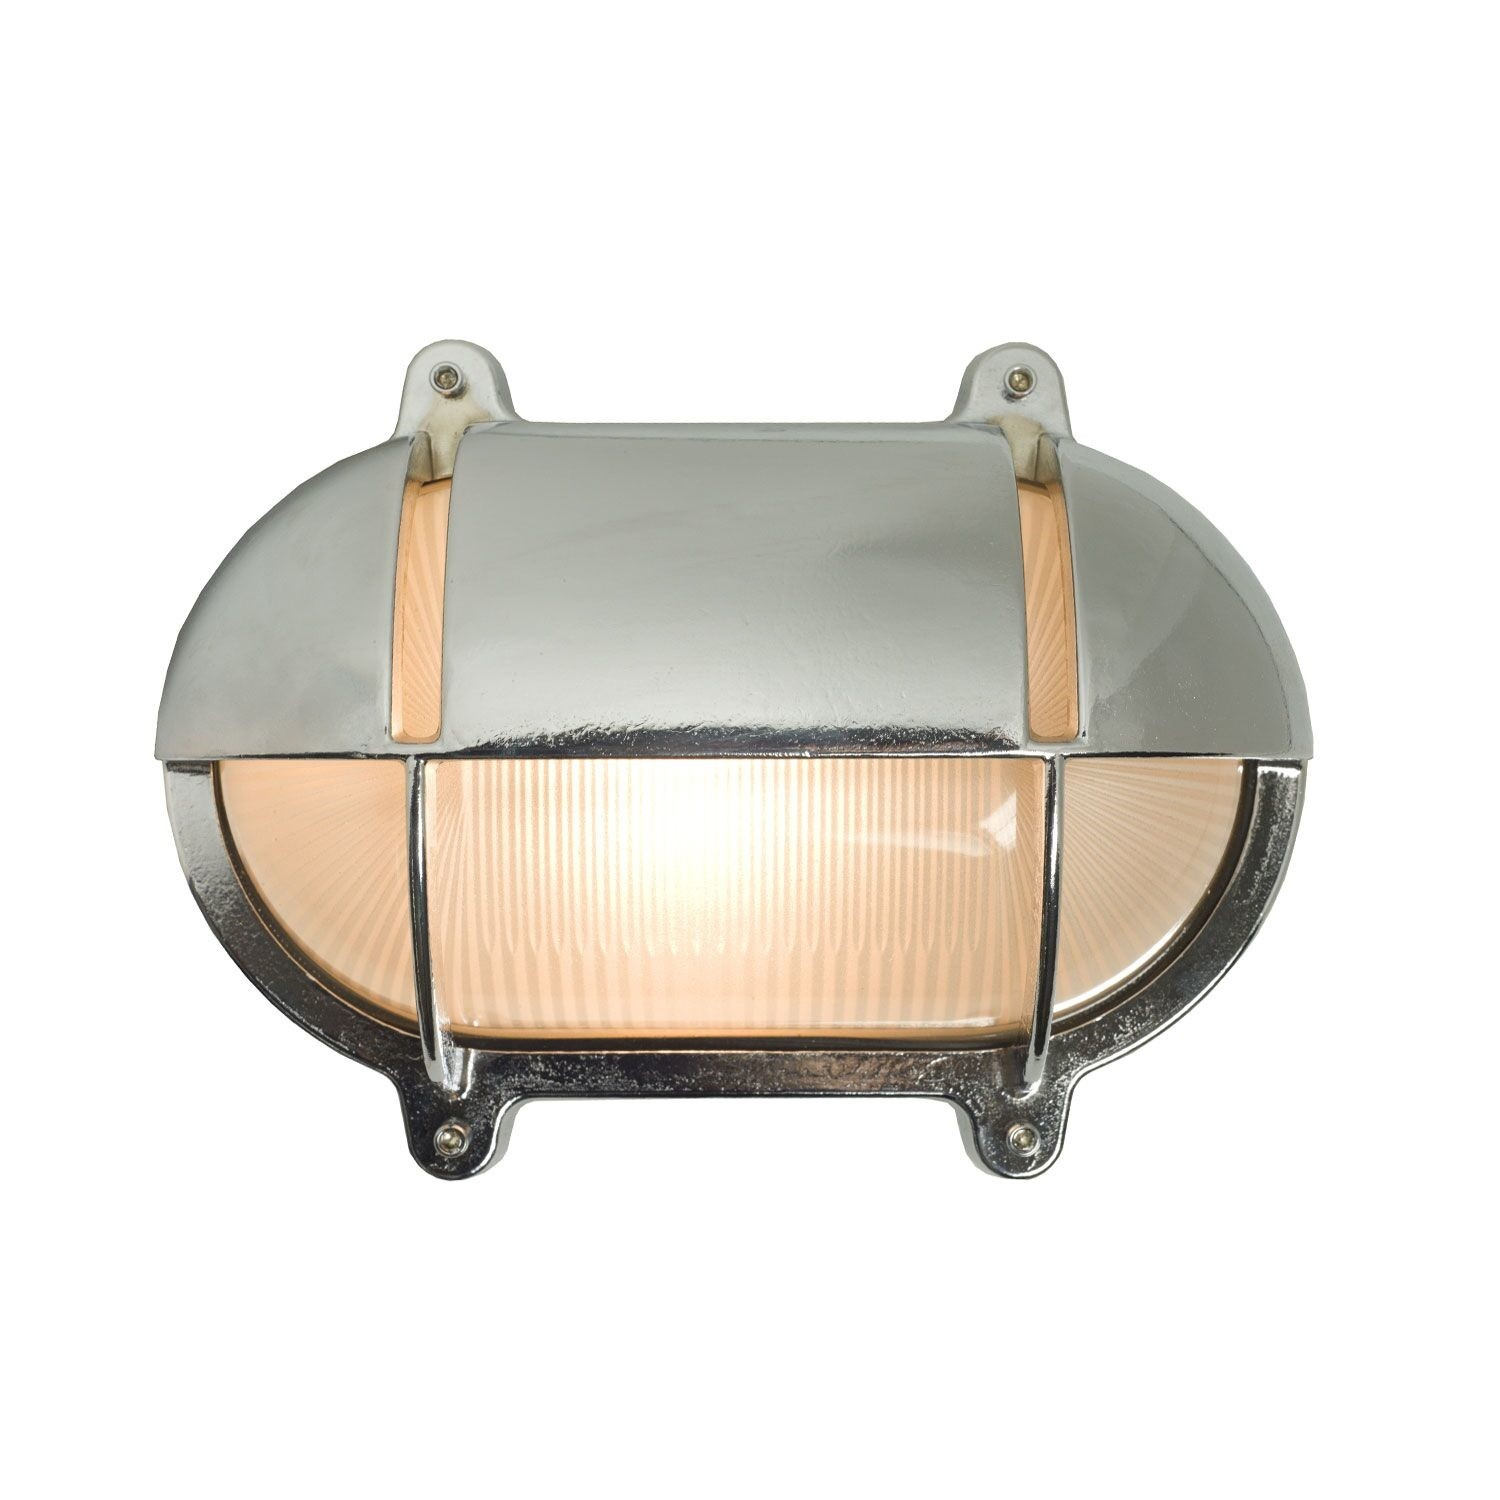 Oval Brass Bulkhead With Eyelid Shield Chrome Plated, Medium